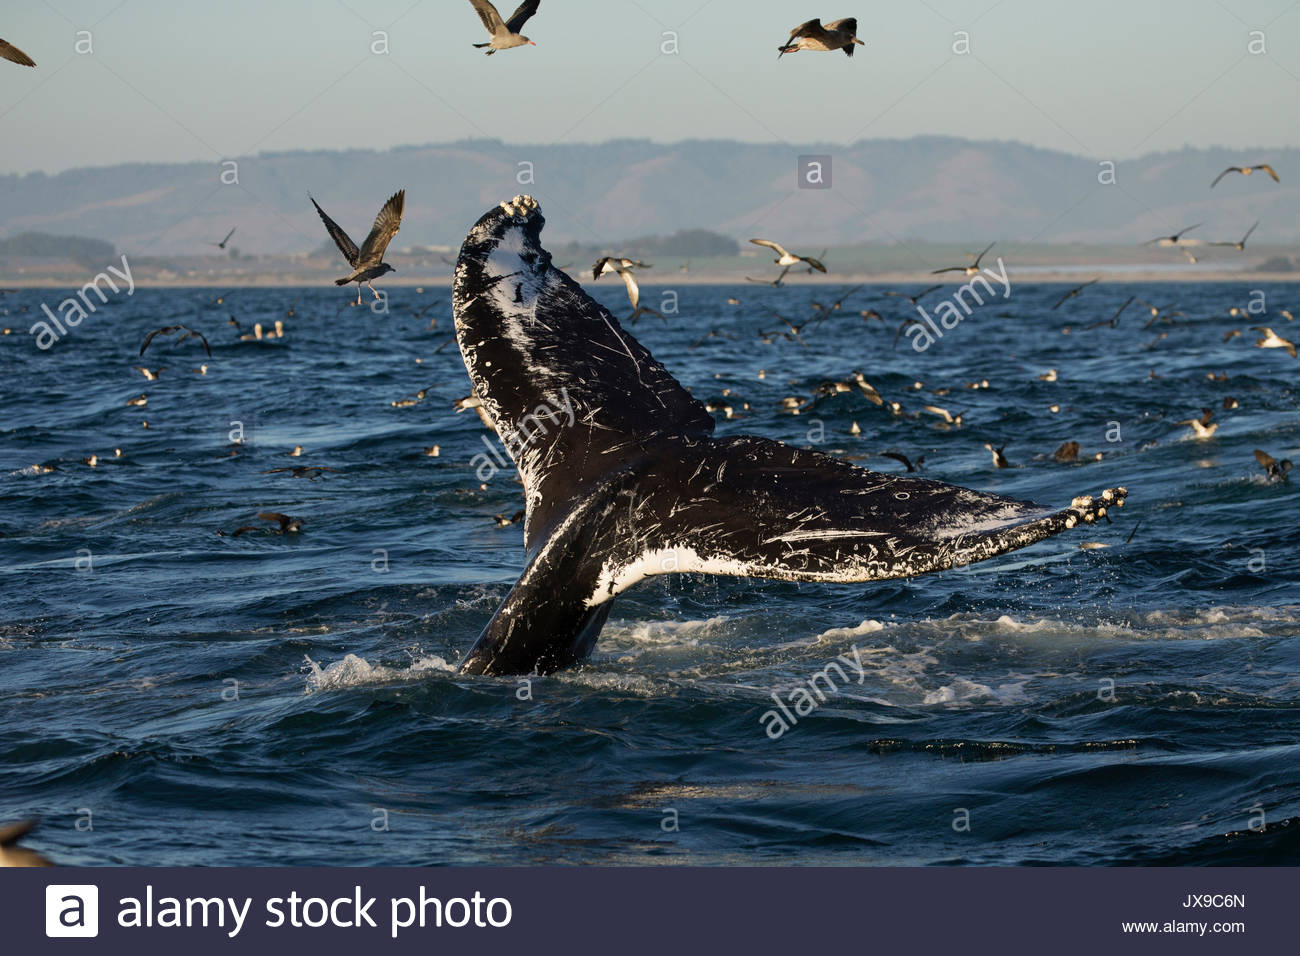 A humpback whale dives in the warm waters of Monterey Bay, California. - Stock Image